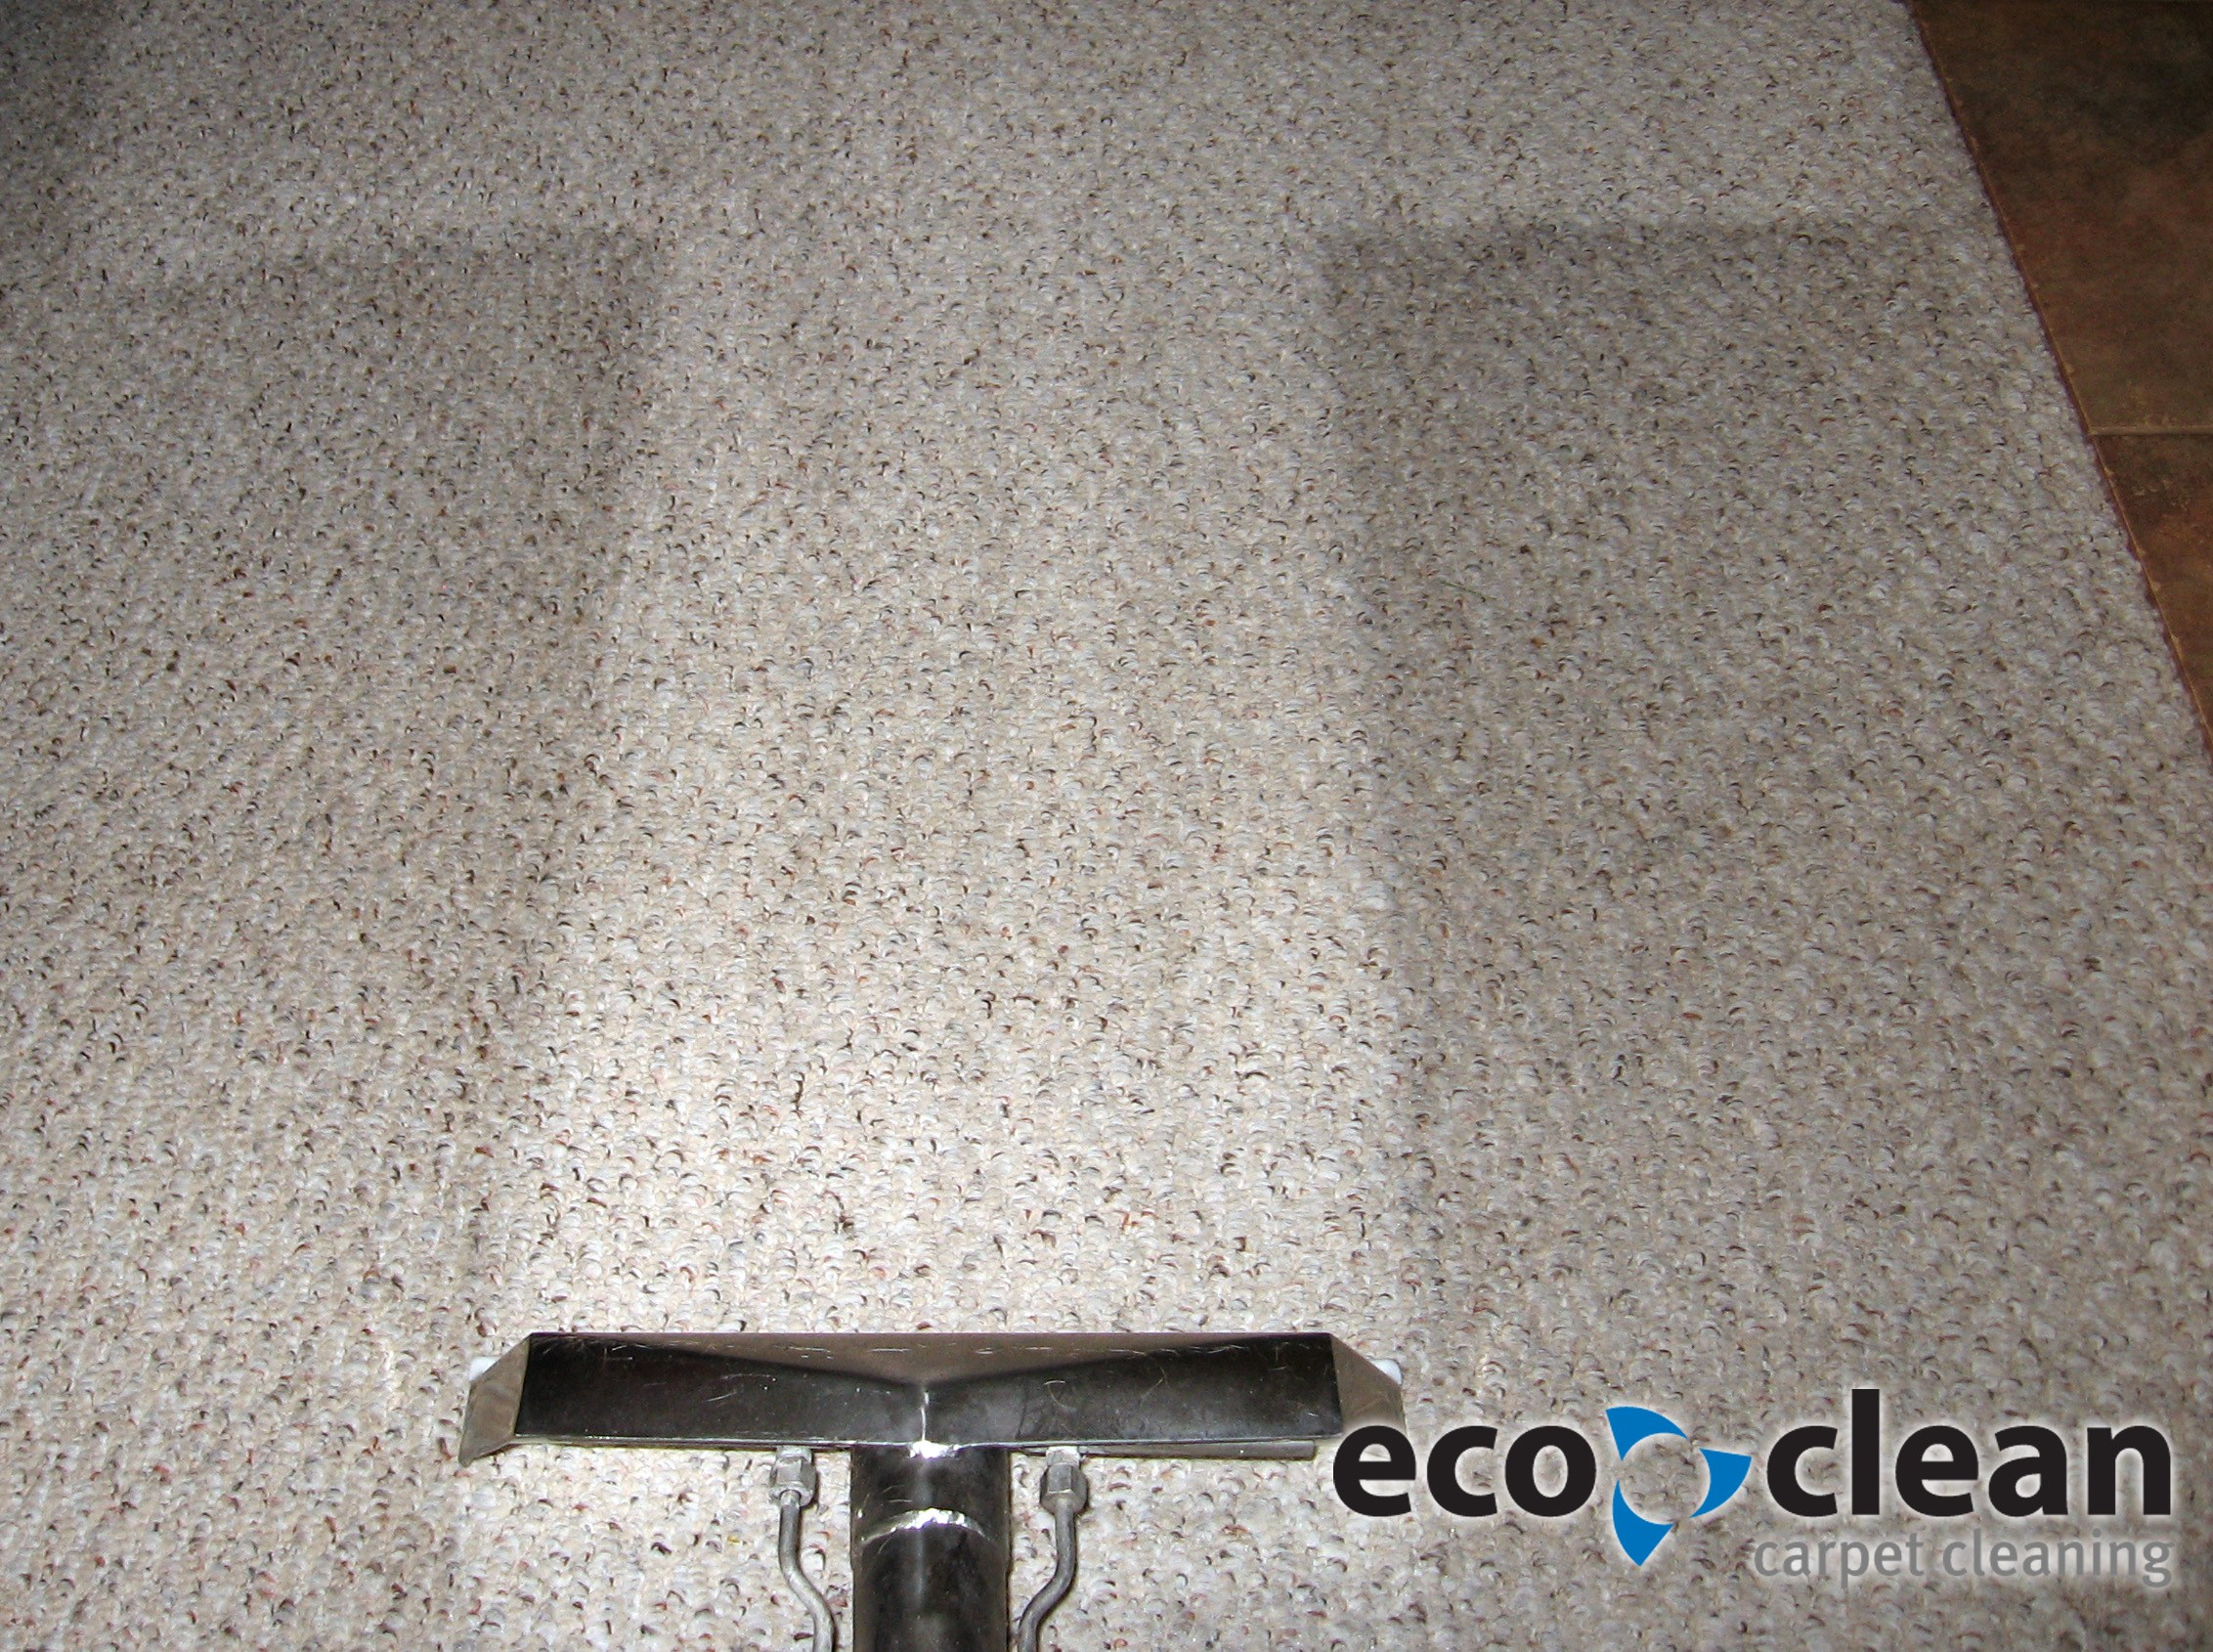 Cleaning Berber is no problem for Eco Clean